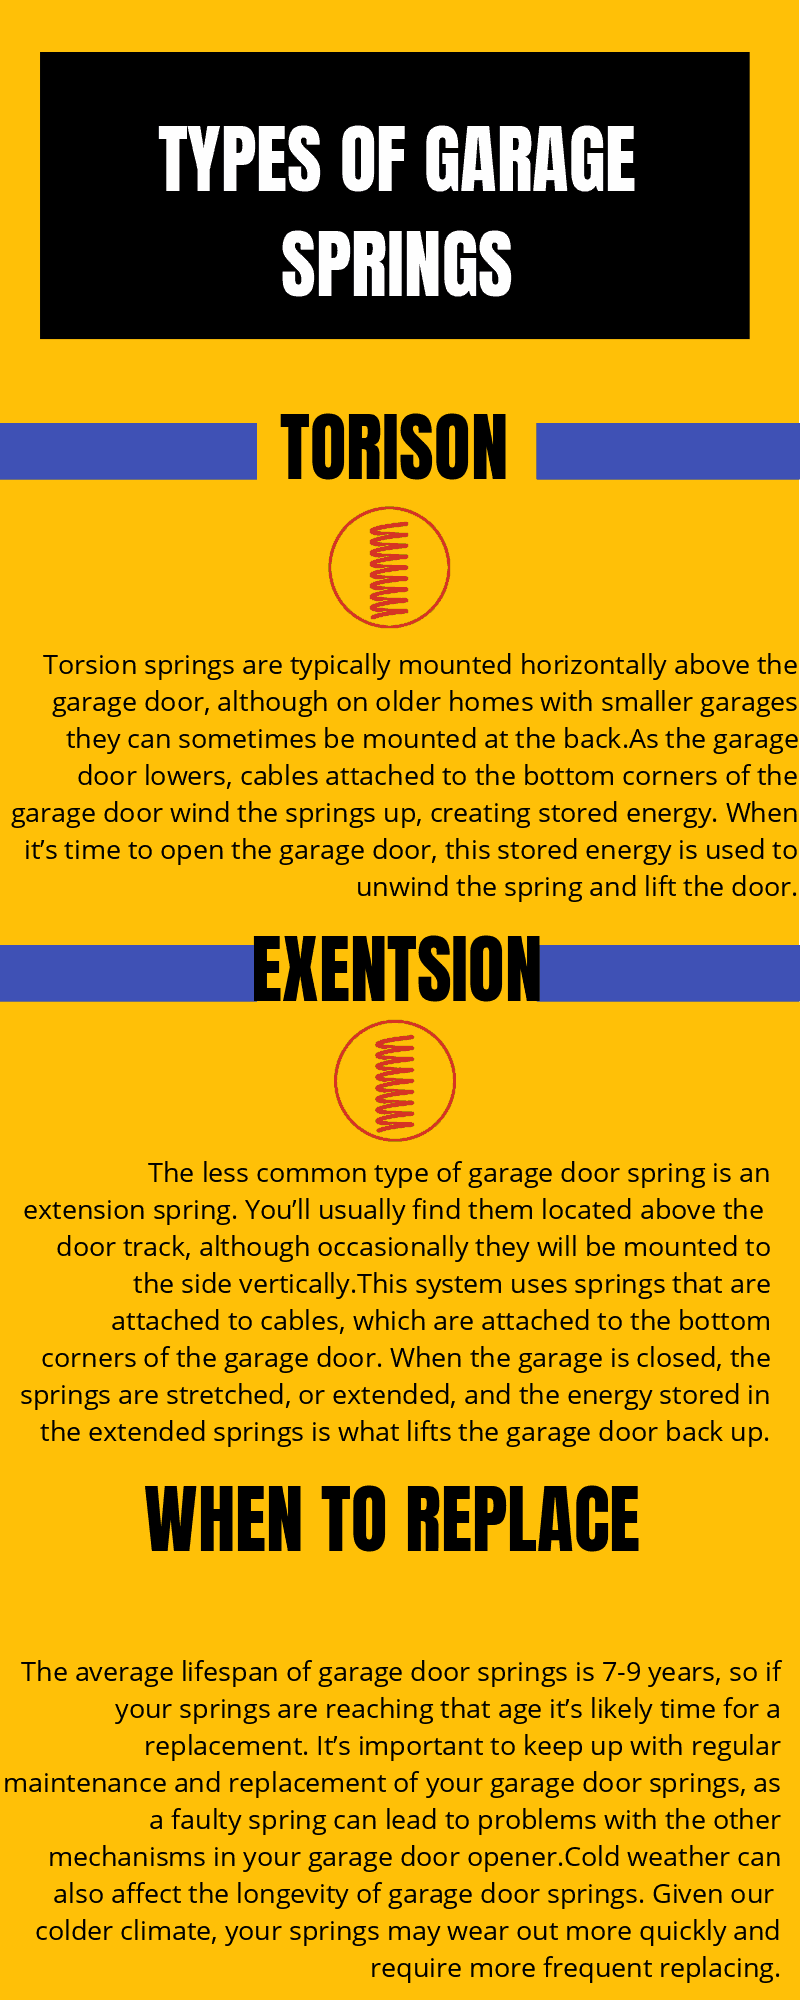 What Are Garage Door Springs? #infographic